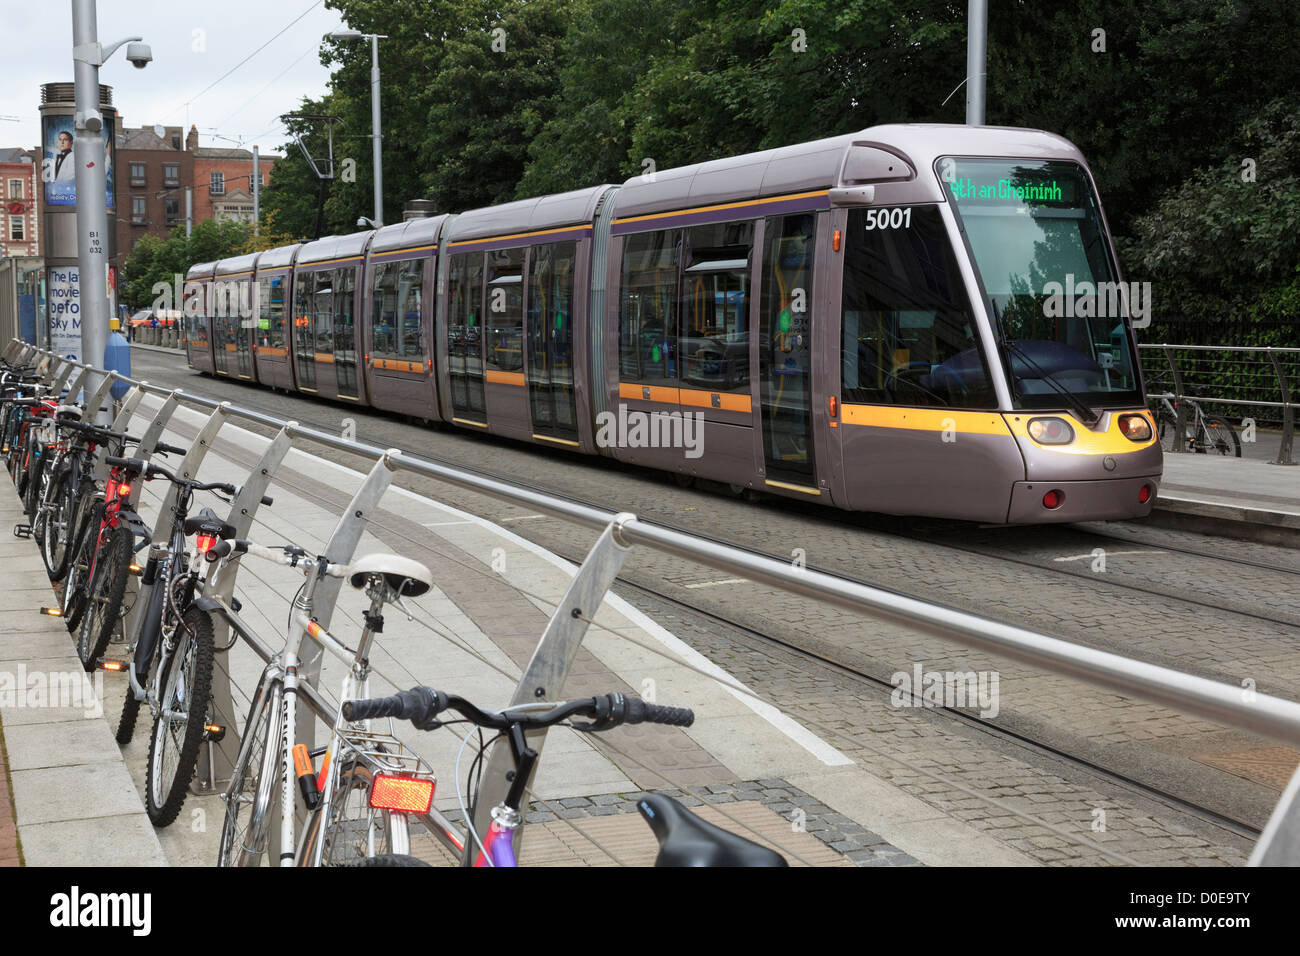 Luas Light Rail System tram in city centre station with bikes chained up to railings at Stephen's Green Dublin - Stock Image